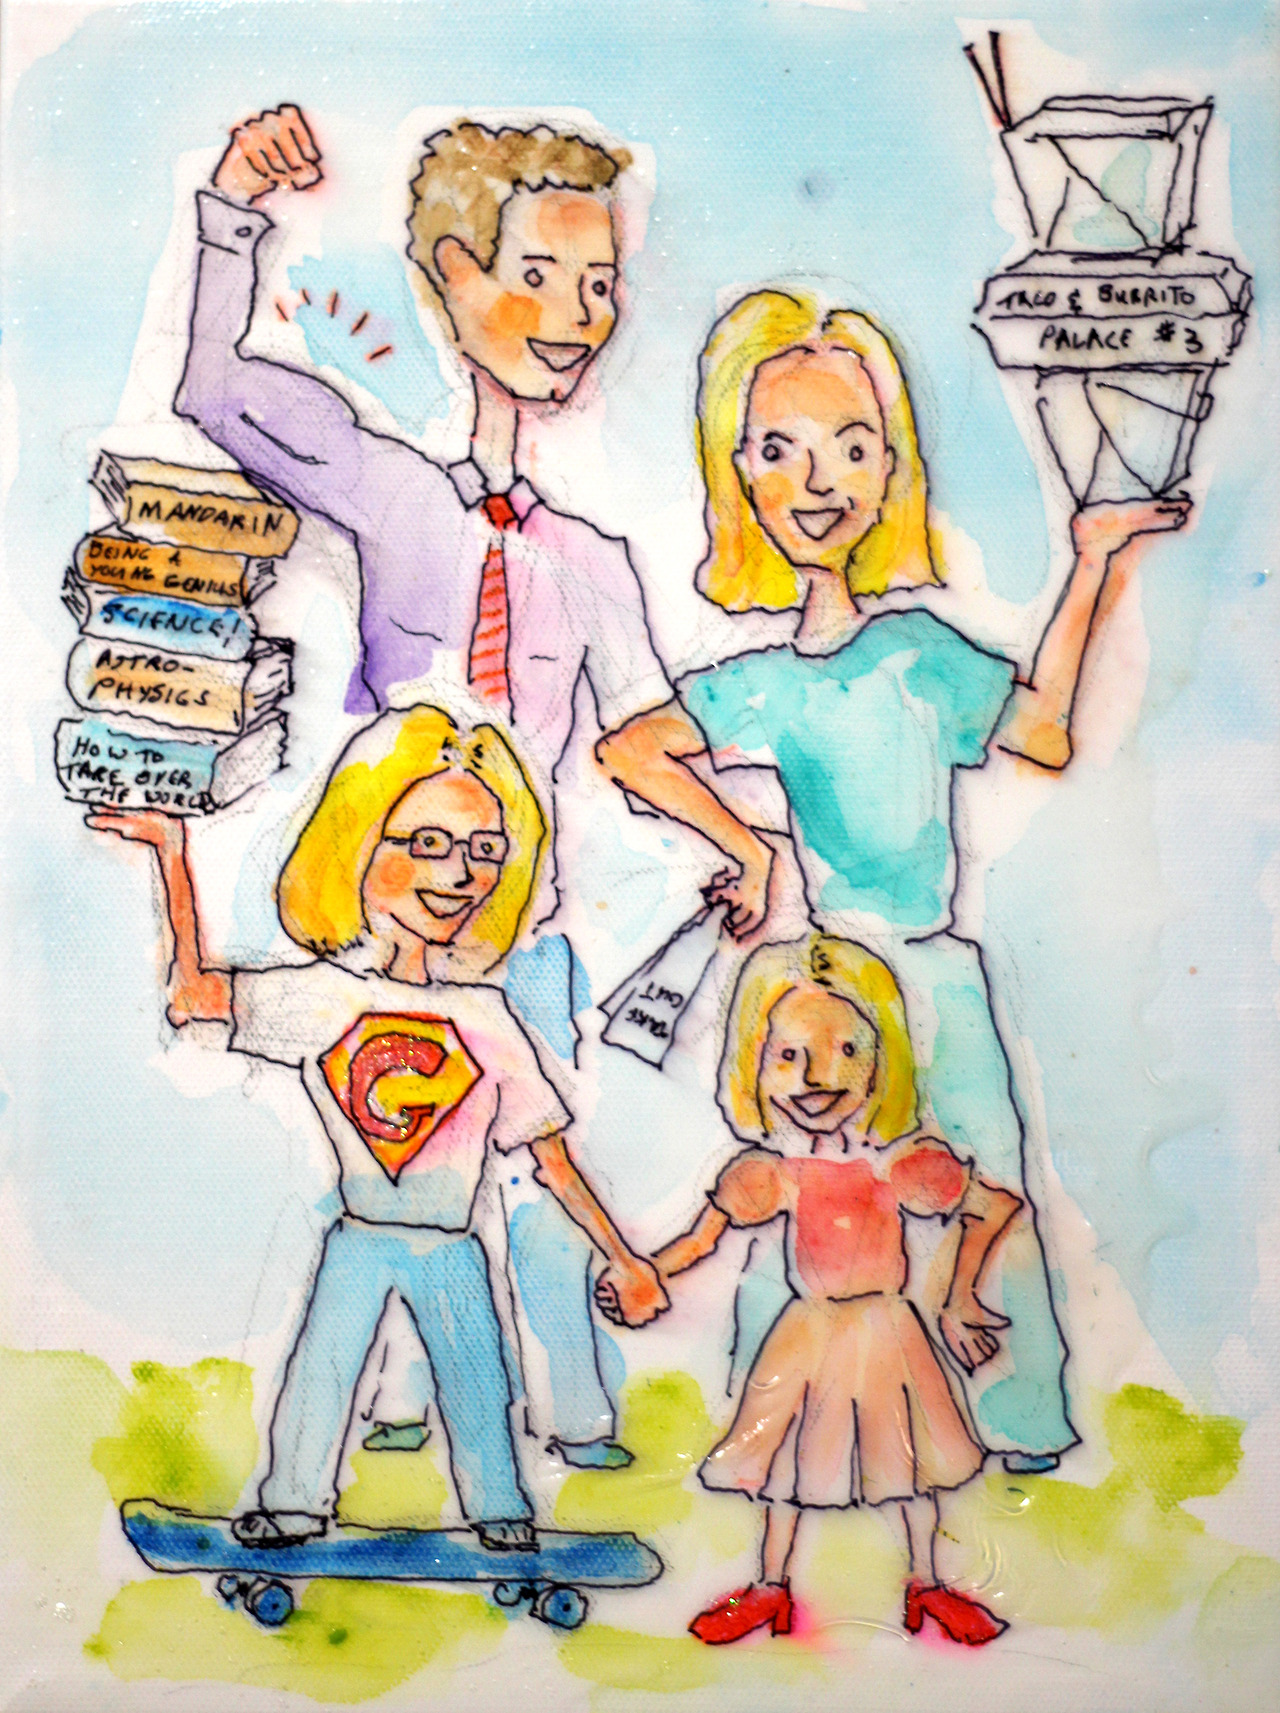 12/24/13 -  Chicago Super Family!    This is a kickstarter piece. Galeta wanted her family represented as a super duper family. I hope I captured all of the very specific requests. Thank you, Carolyn and Pat for backing the kickstarter! Merry Xmas!